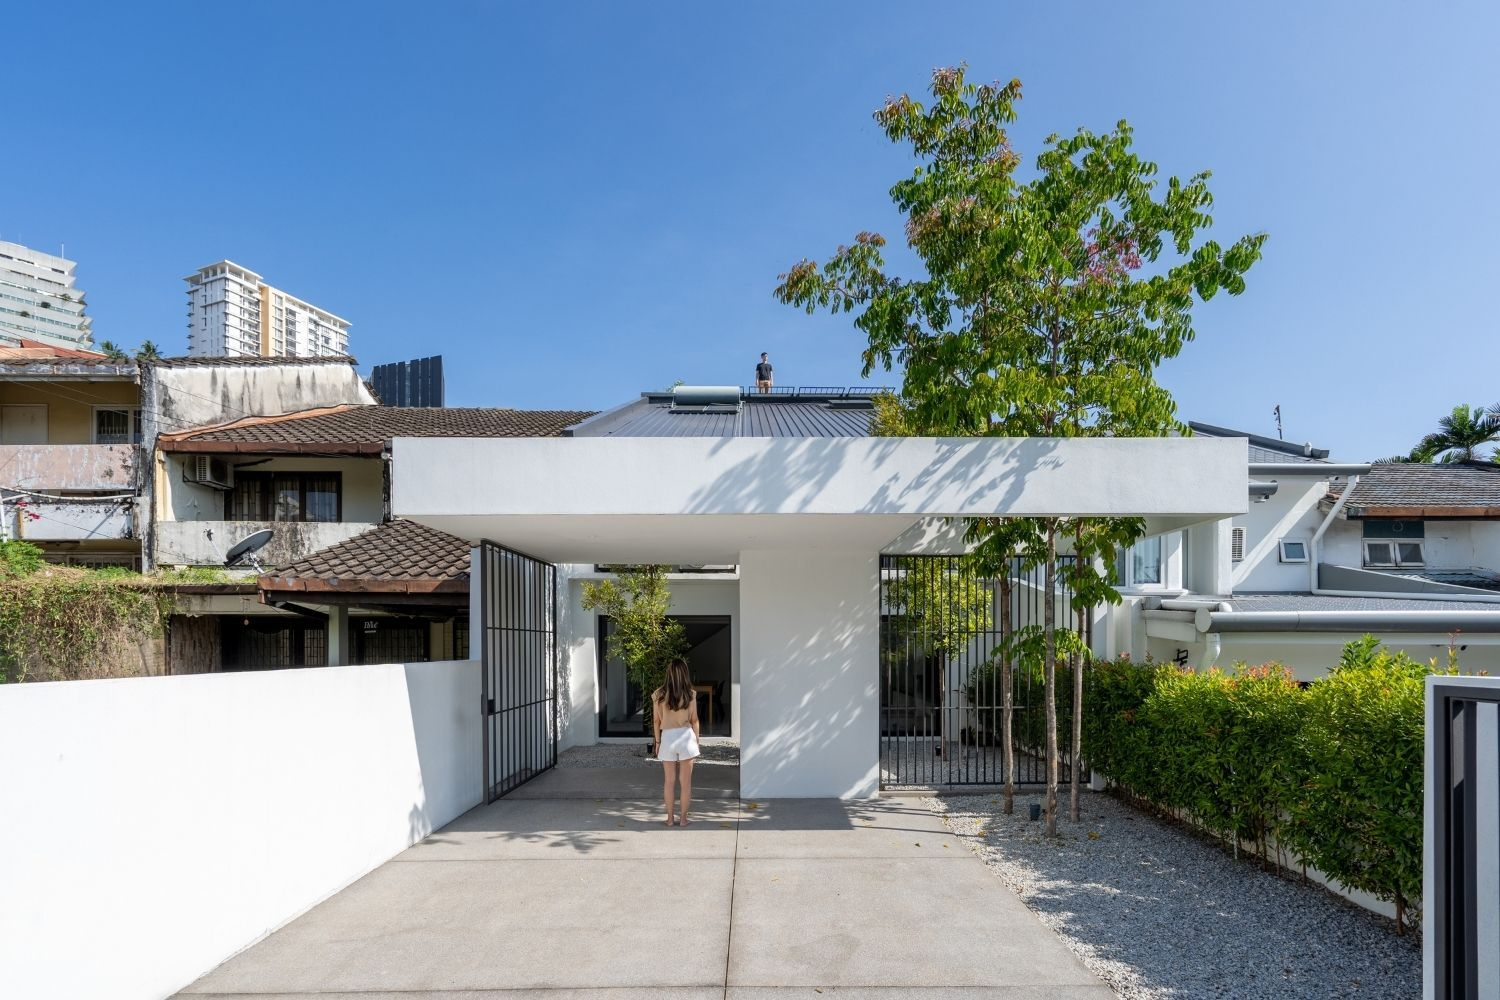 Home Tour: A Terrace House In Kuala Lumpur With A T-Shaped Facade